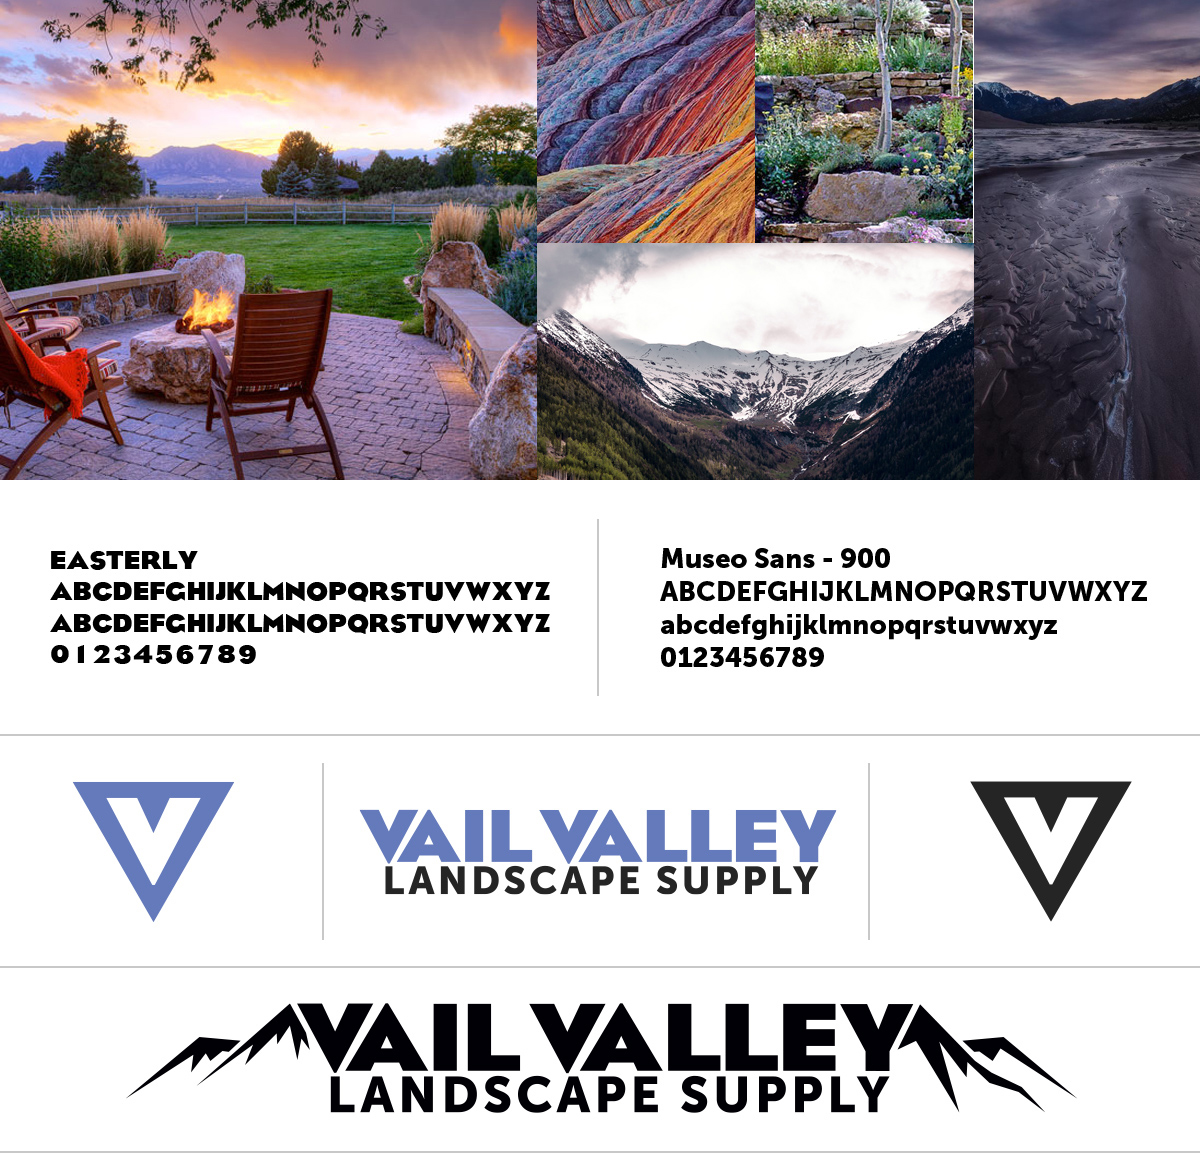 danni-goodman-branding-vail-valley-landscape-supply02.png